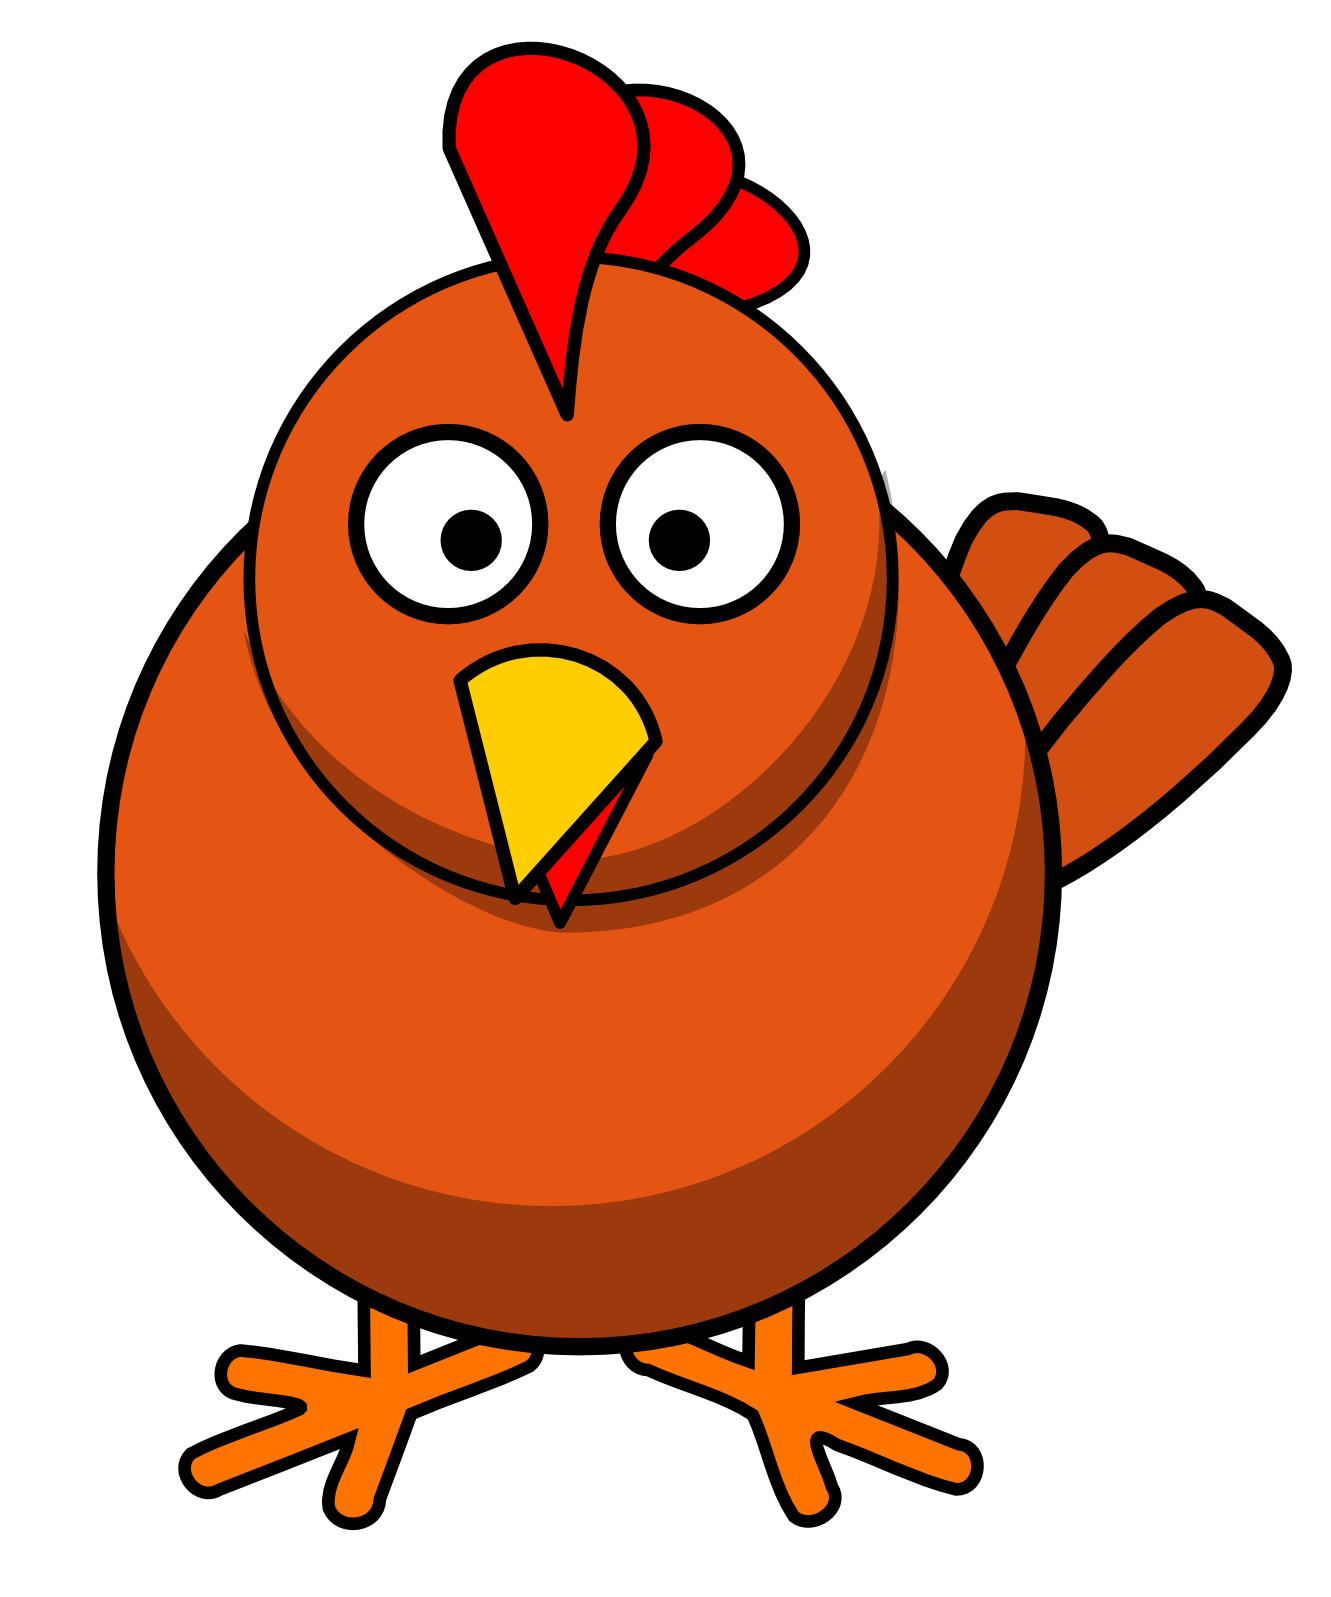 Chicken egg clipart free images 2